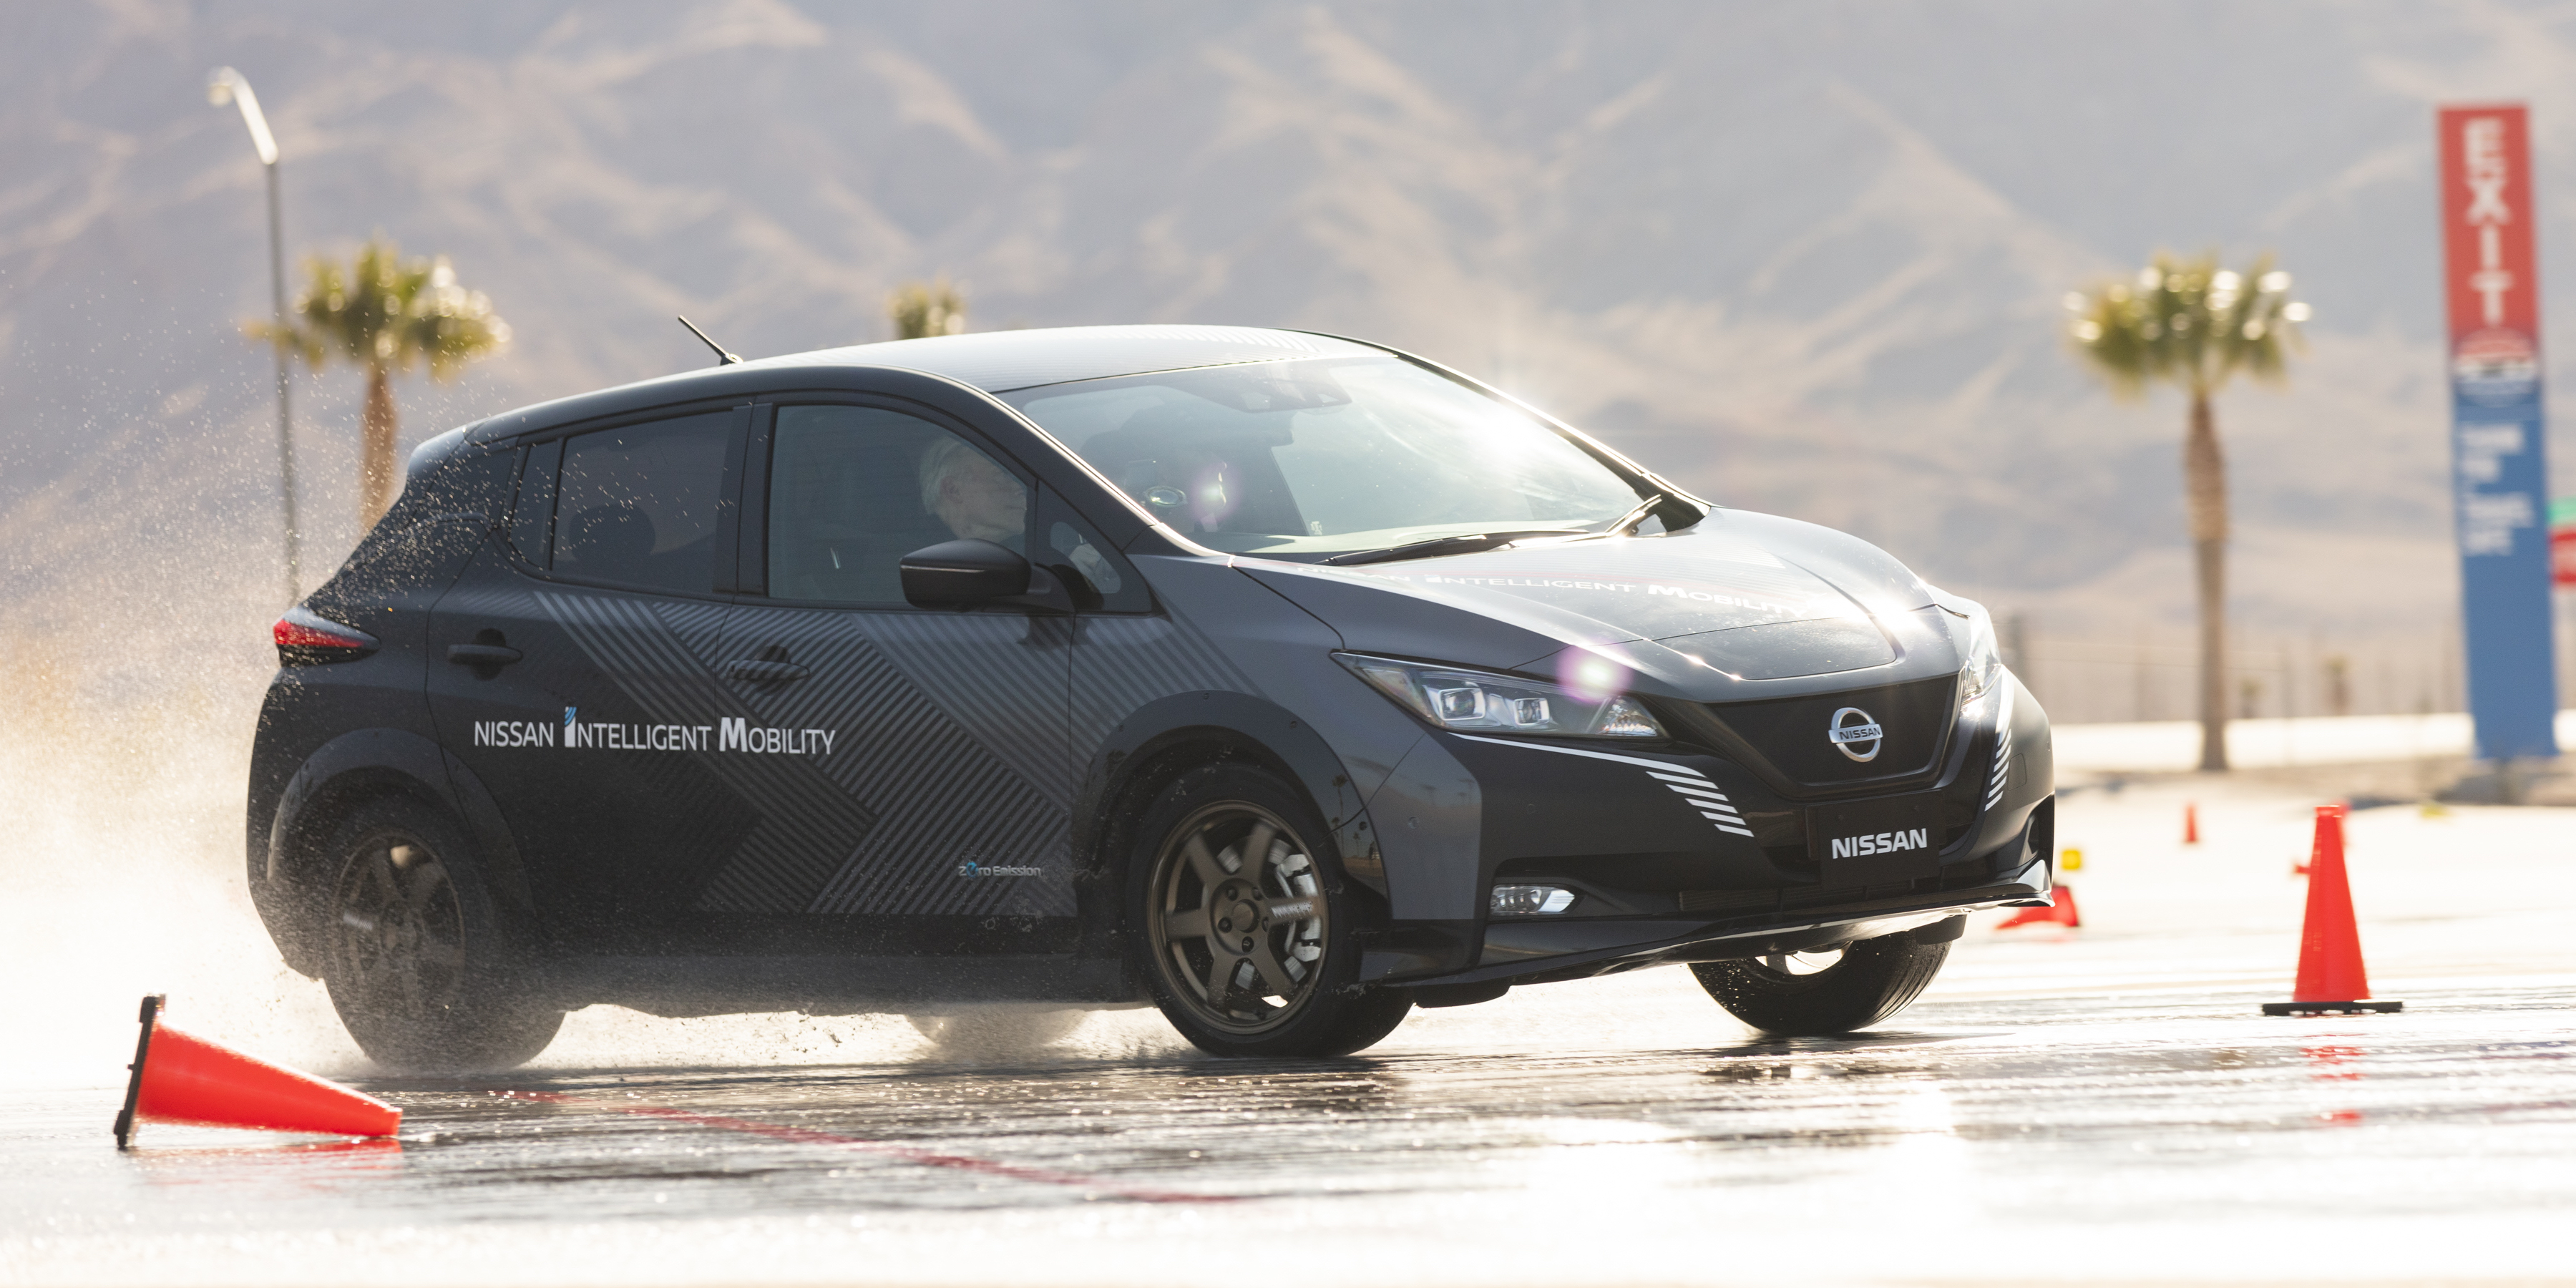 Nissan e-4ORCE First Drive: New dual motor AWD control tech makes EVs quicker and safer - Electrek